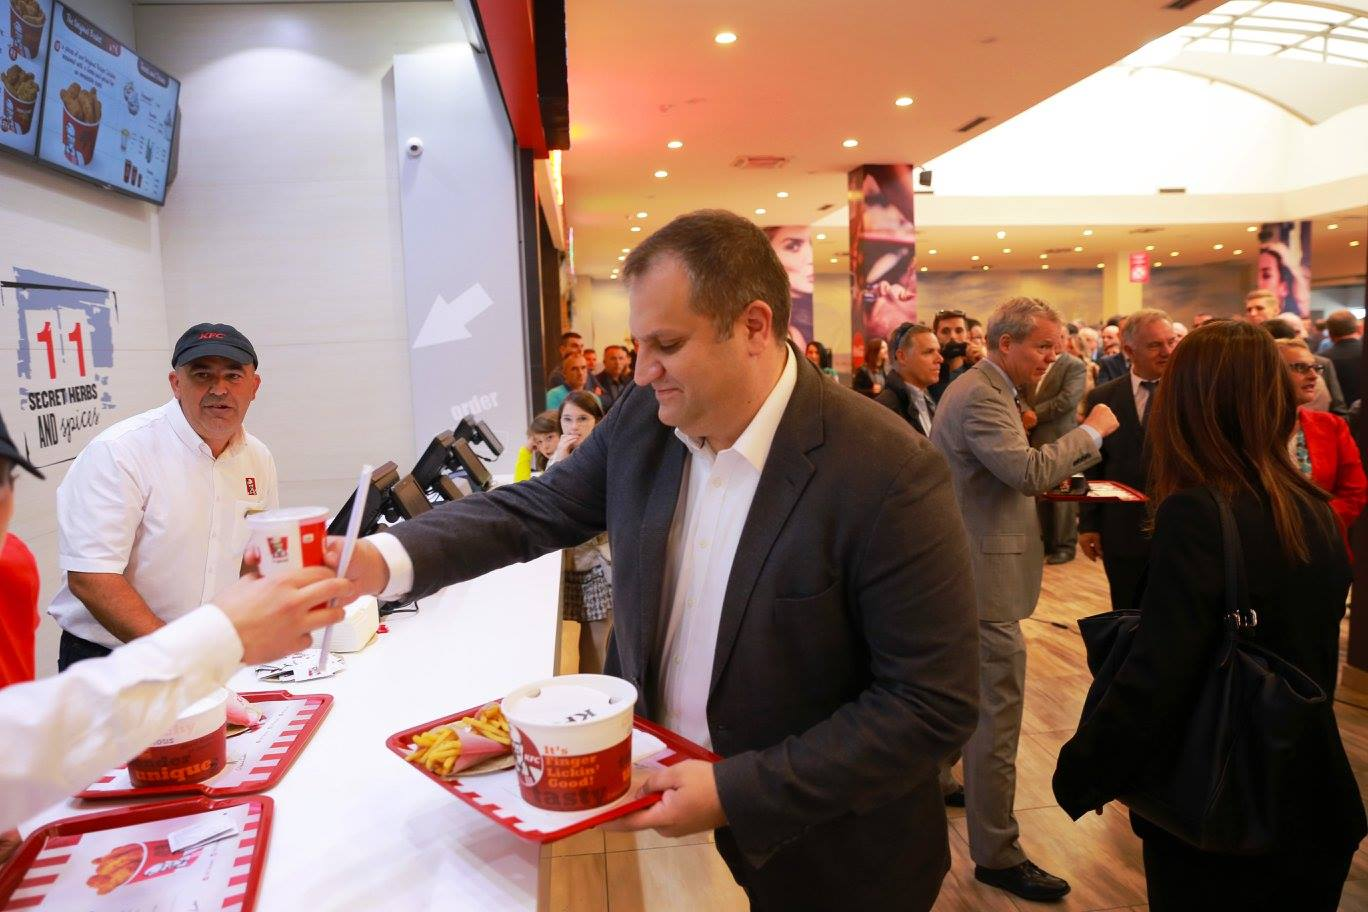 history of kfc the restaurant commerce essay View essay - mcdonald's and mcdonald's and kfc recipes for success in china from business 2015 at telkom institute of the 1,000th kfc restaurant was opened in.